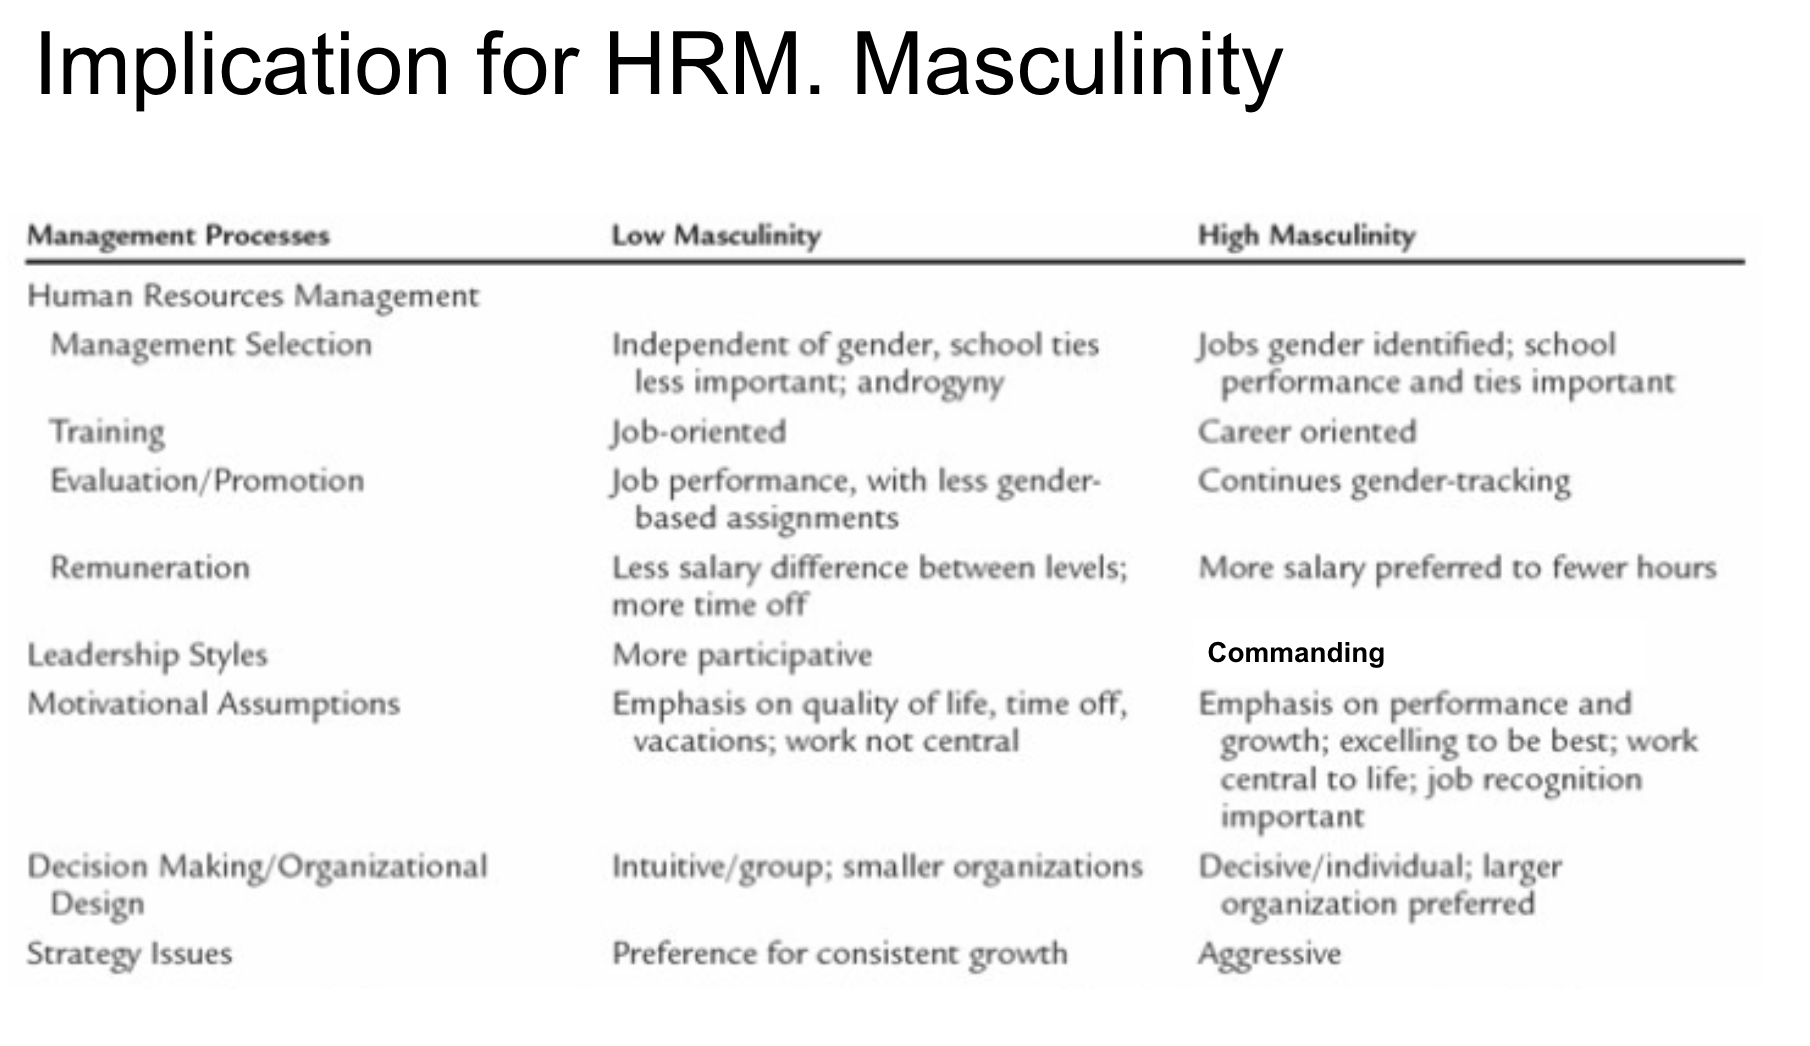 HRM and masculinity